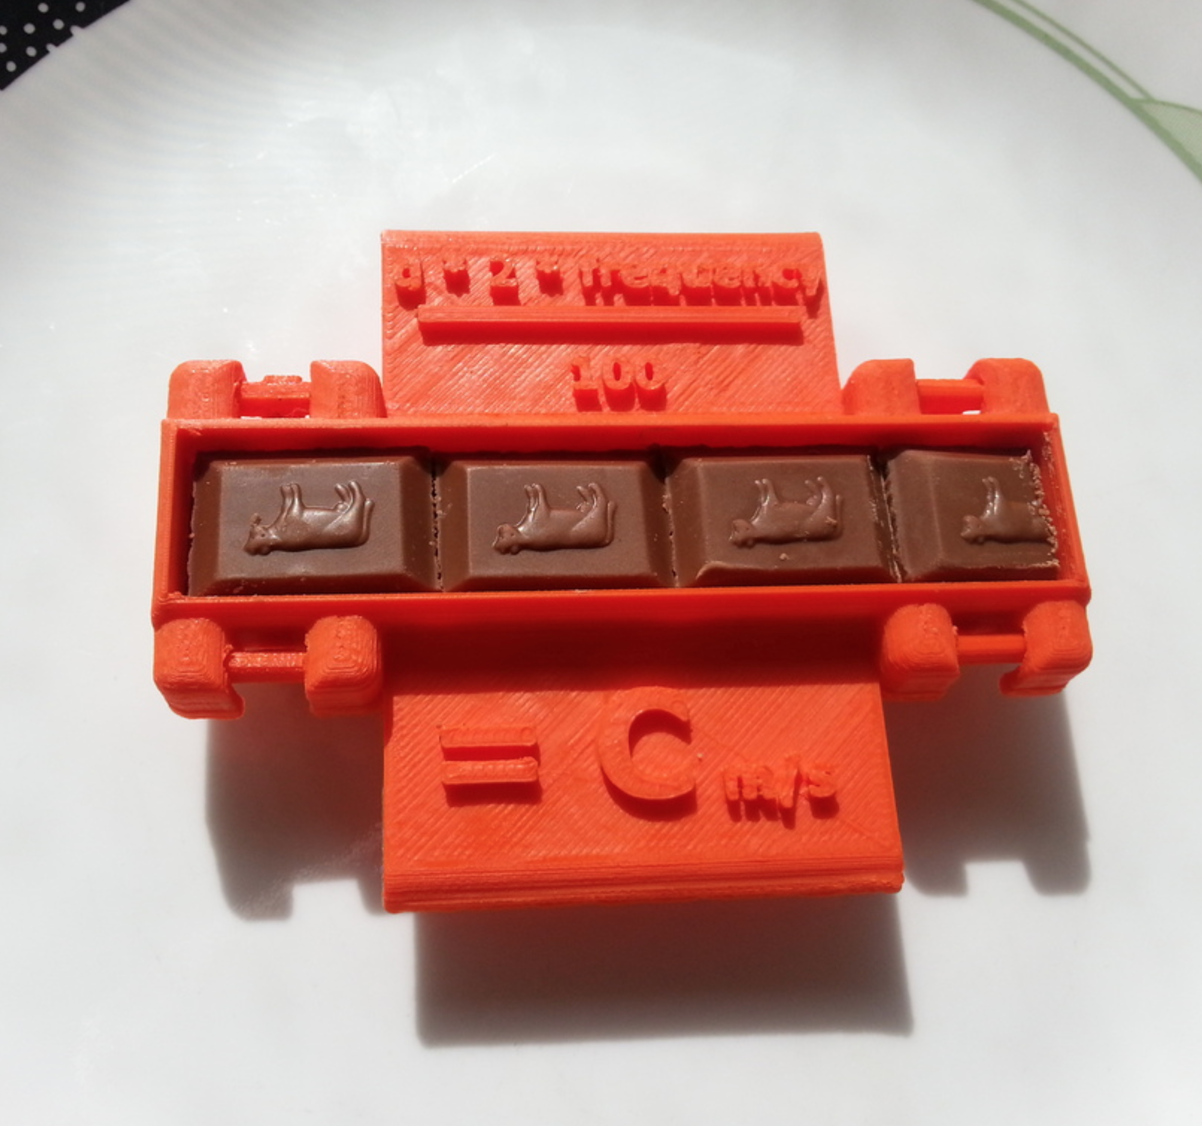 Capture d'écran 2016-12-14 à 16.29.44.png Download free STL file Measure the Speed of Light With Chocolate! • 3D printable design, Yuval_Dascalu